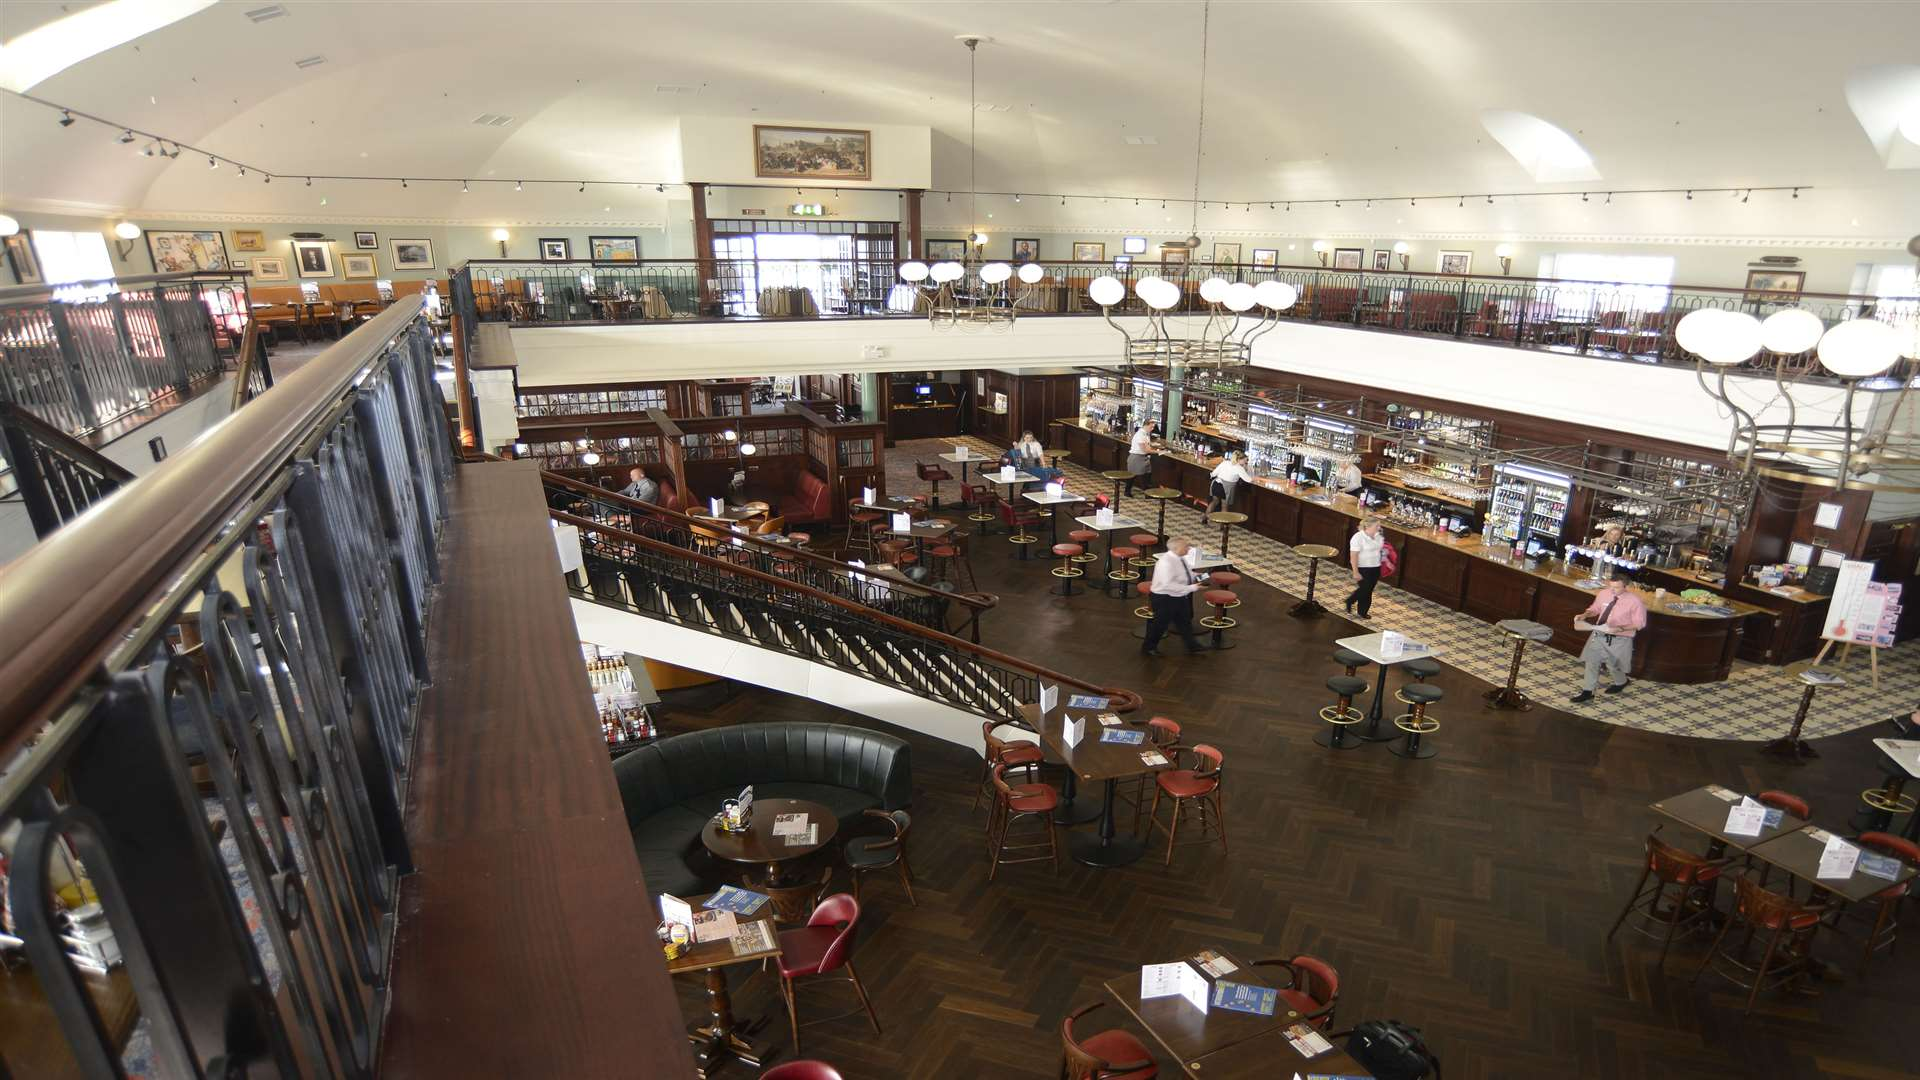 Royal Victoria Pavilion in Ramsgate is the UK's largest Wetherspoons pub